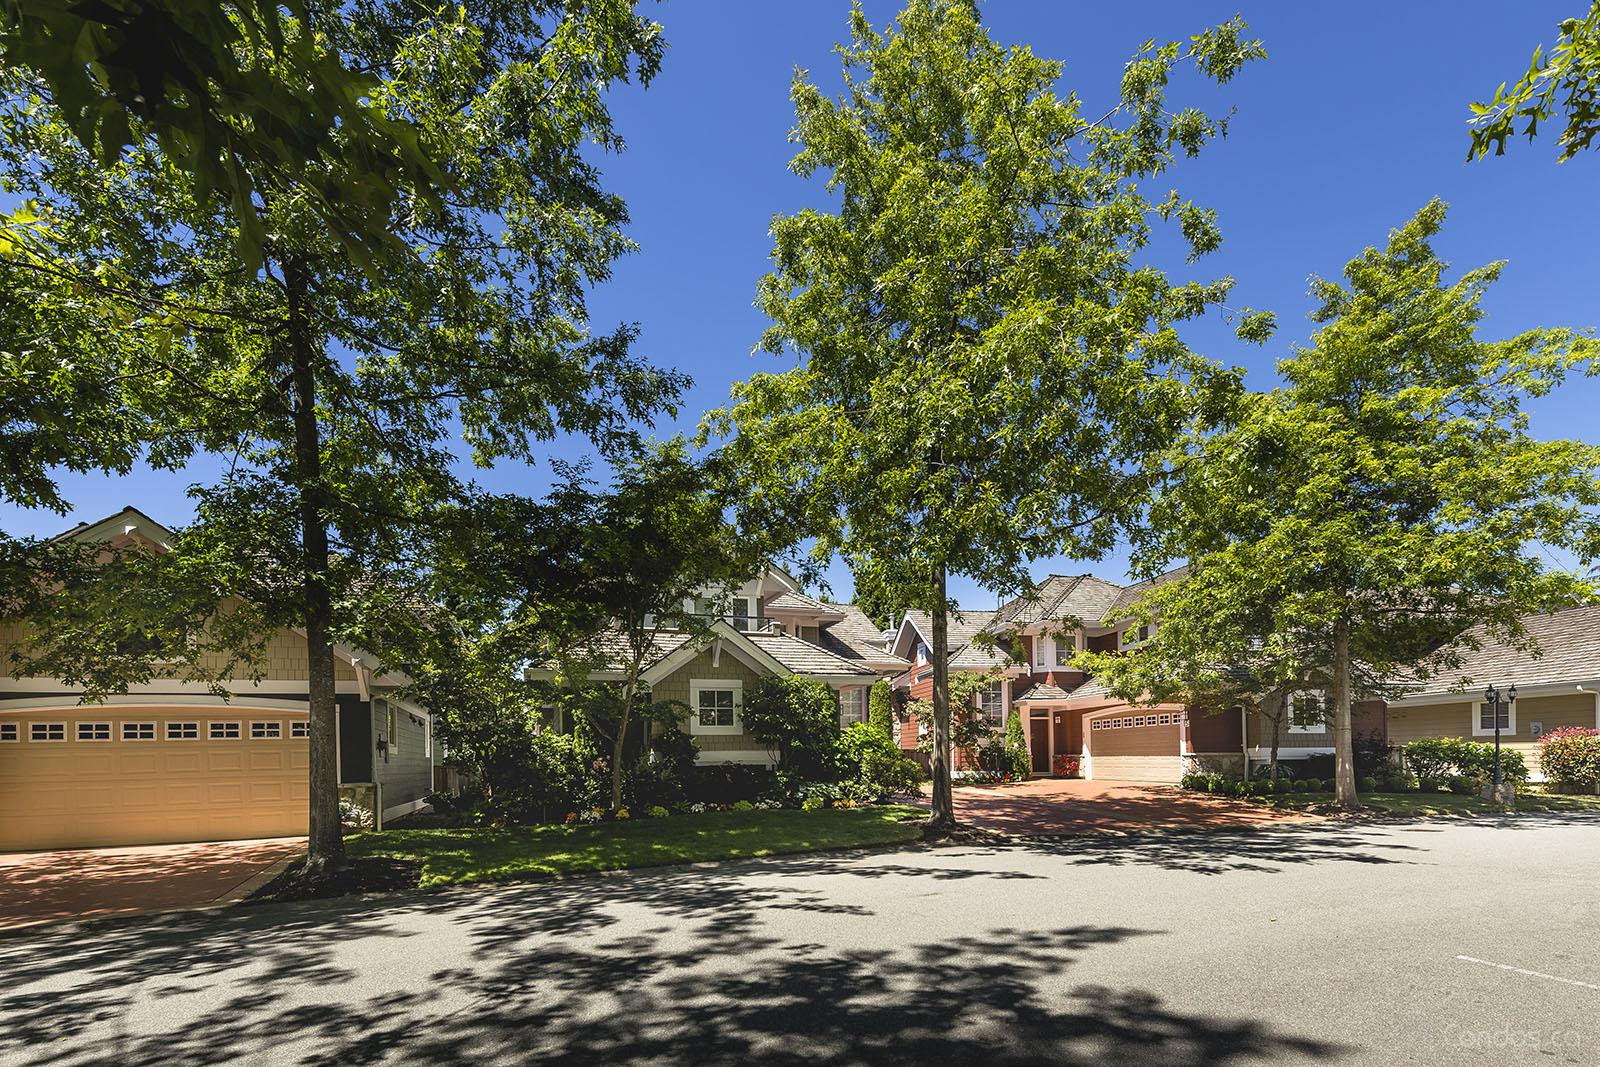 High Grove at 15055 20 Ave, Surrey 1